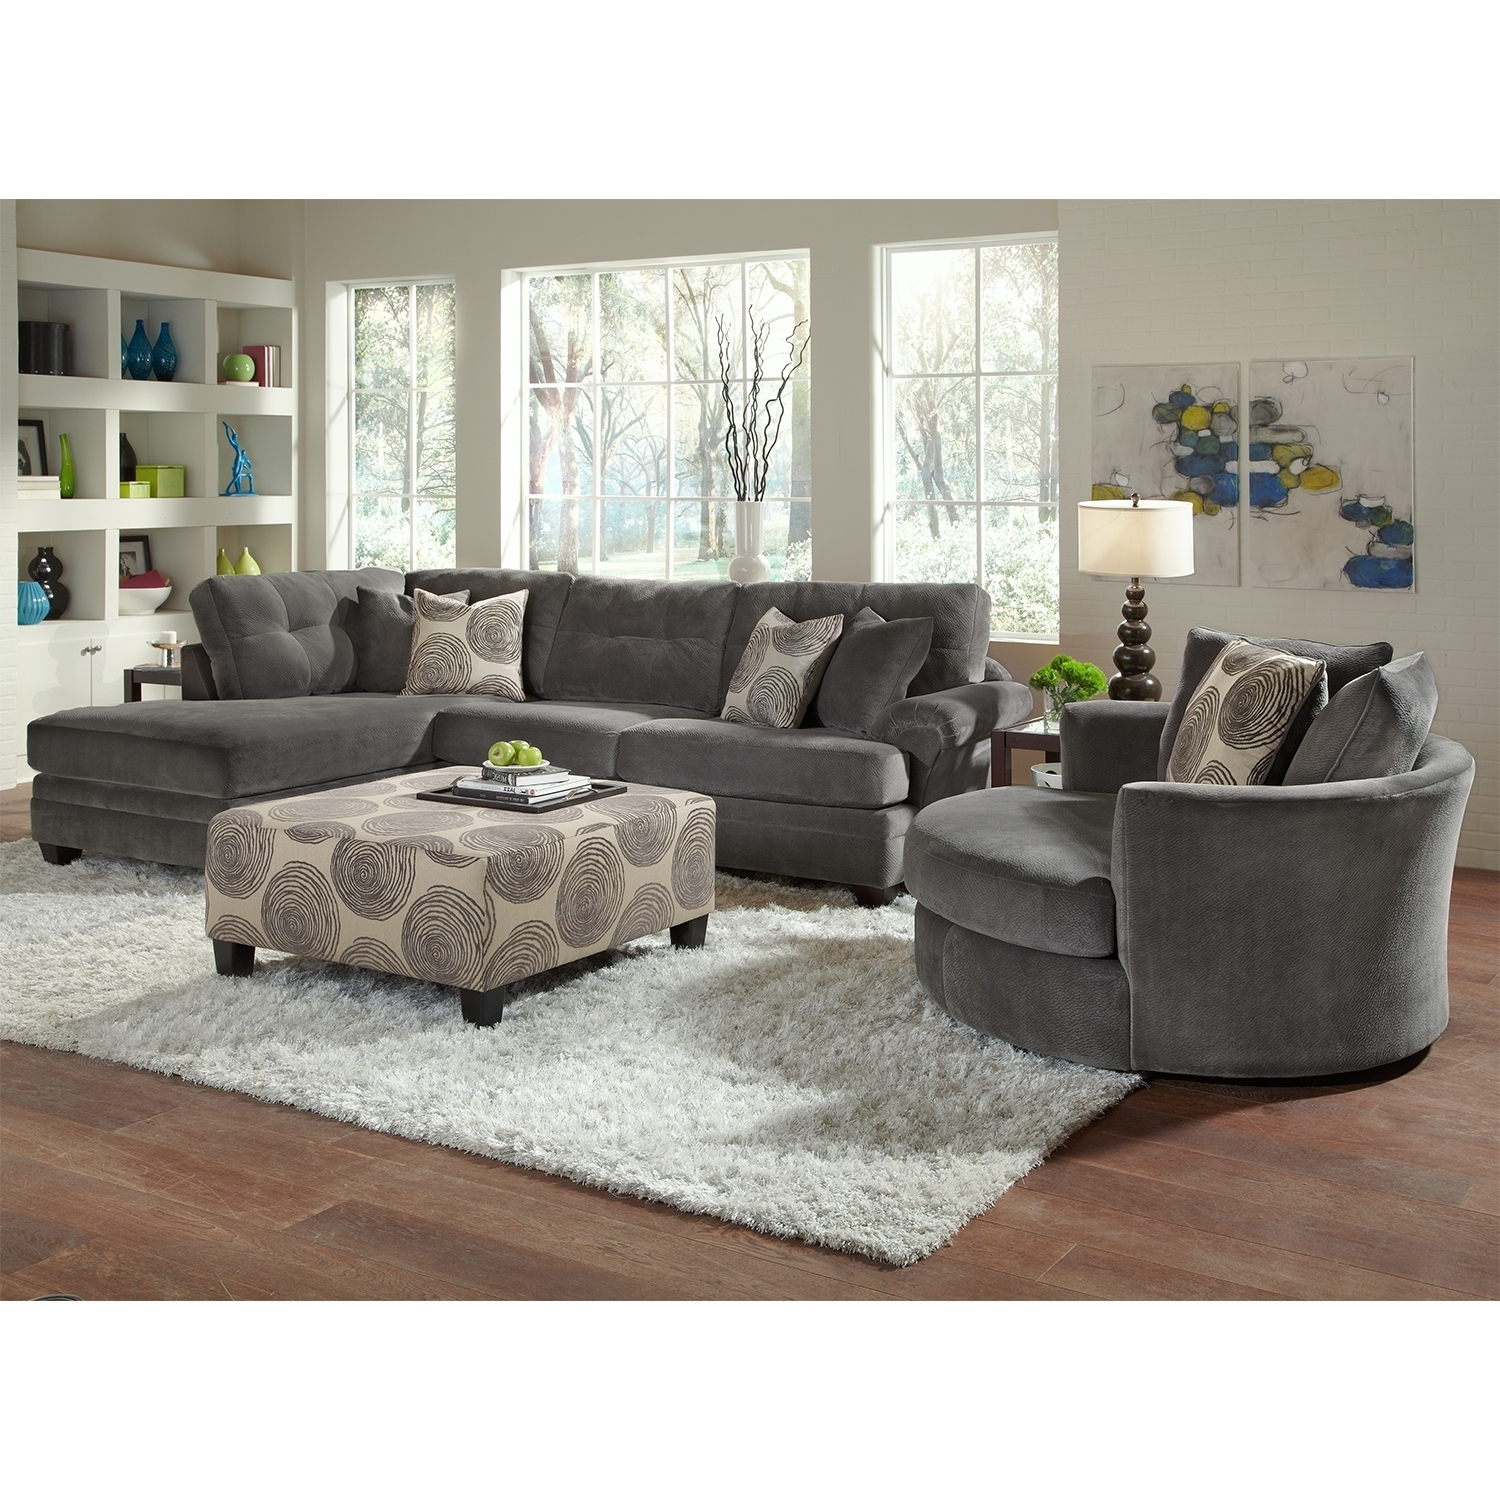 Best 20 Of Rooms To Go Sectional Sofas